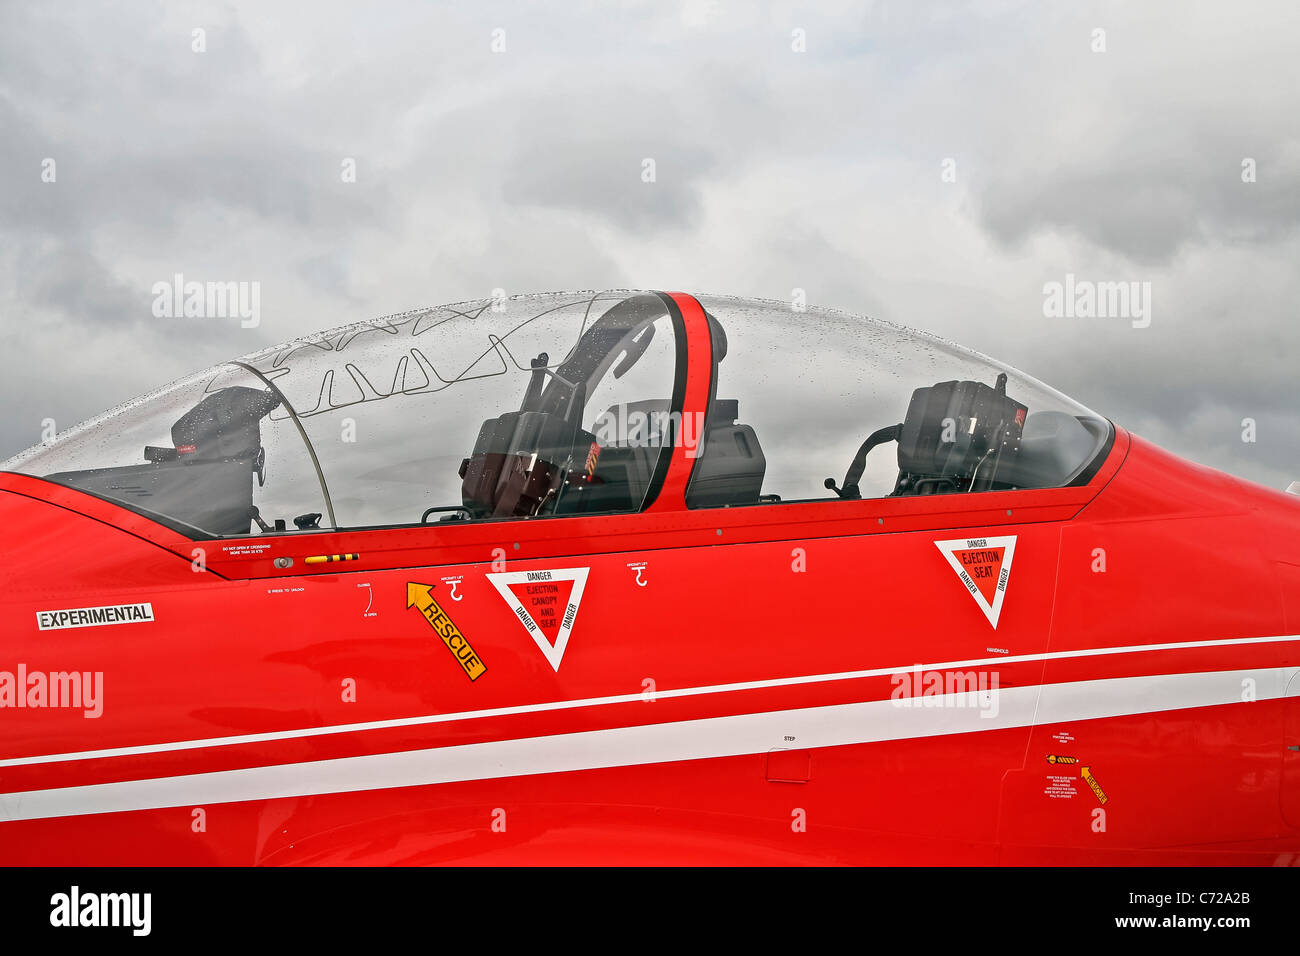 Close up of aircraft cockpit or nose - Stock Image